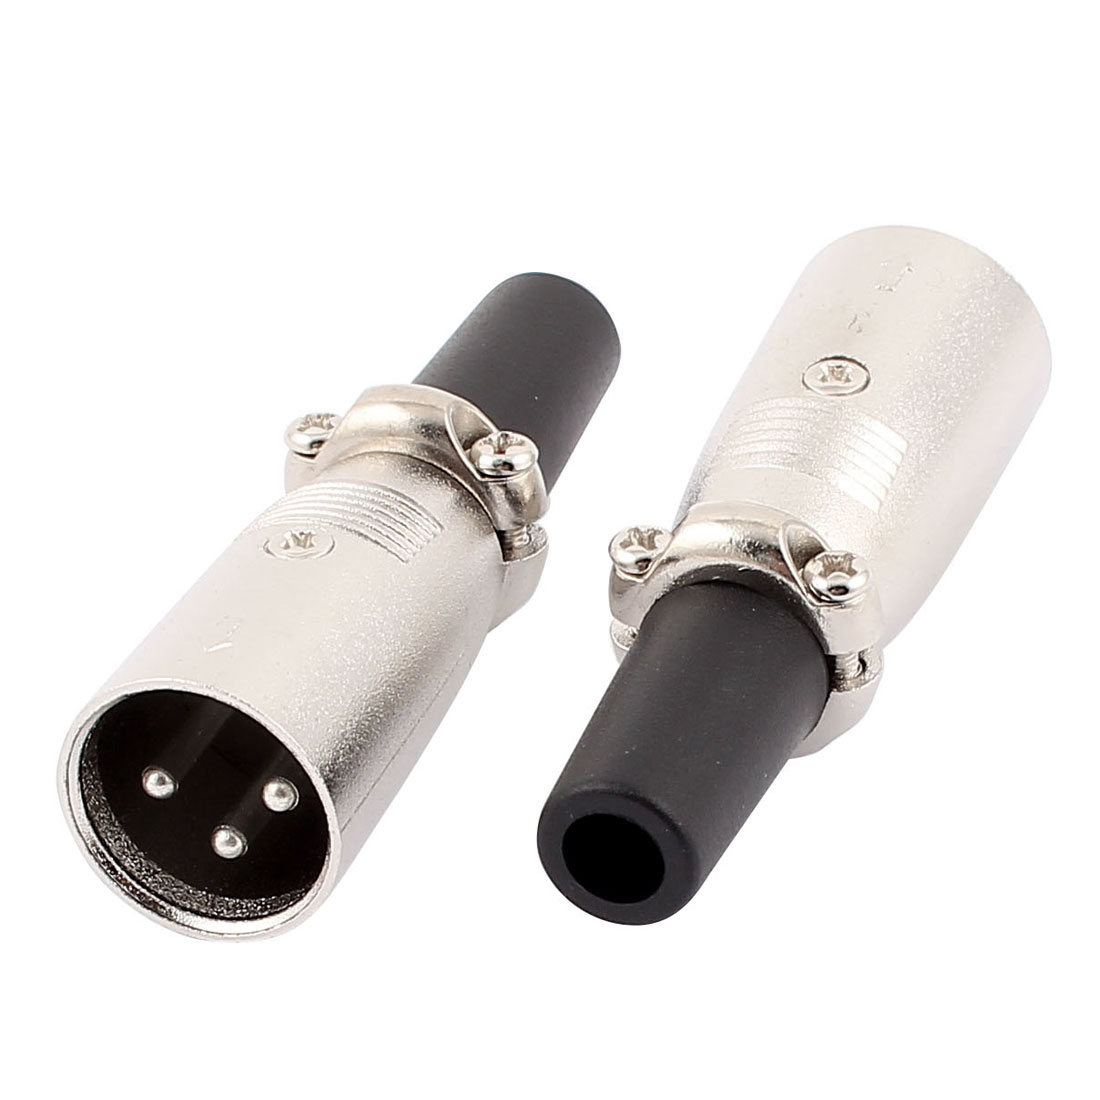 2pcs Microphone Speaker 60mm 3 Terminals XLR Male Audio Cable Connector